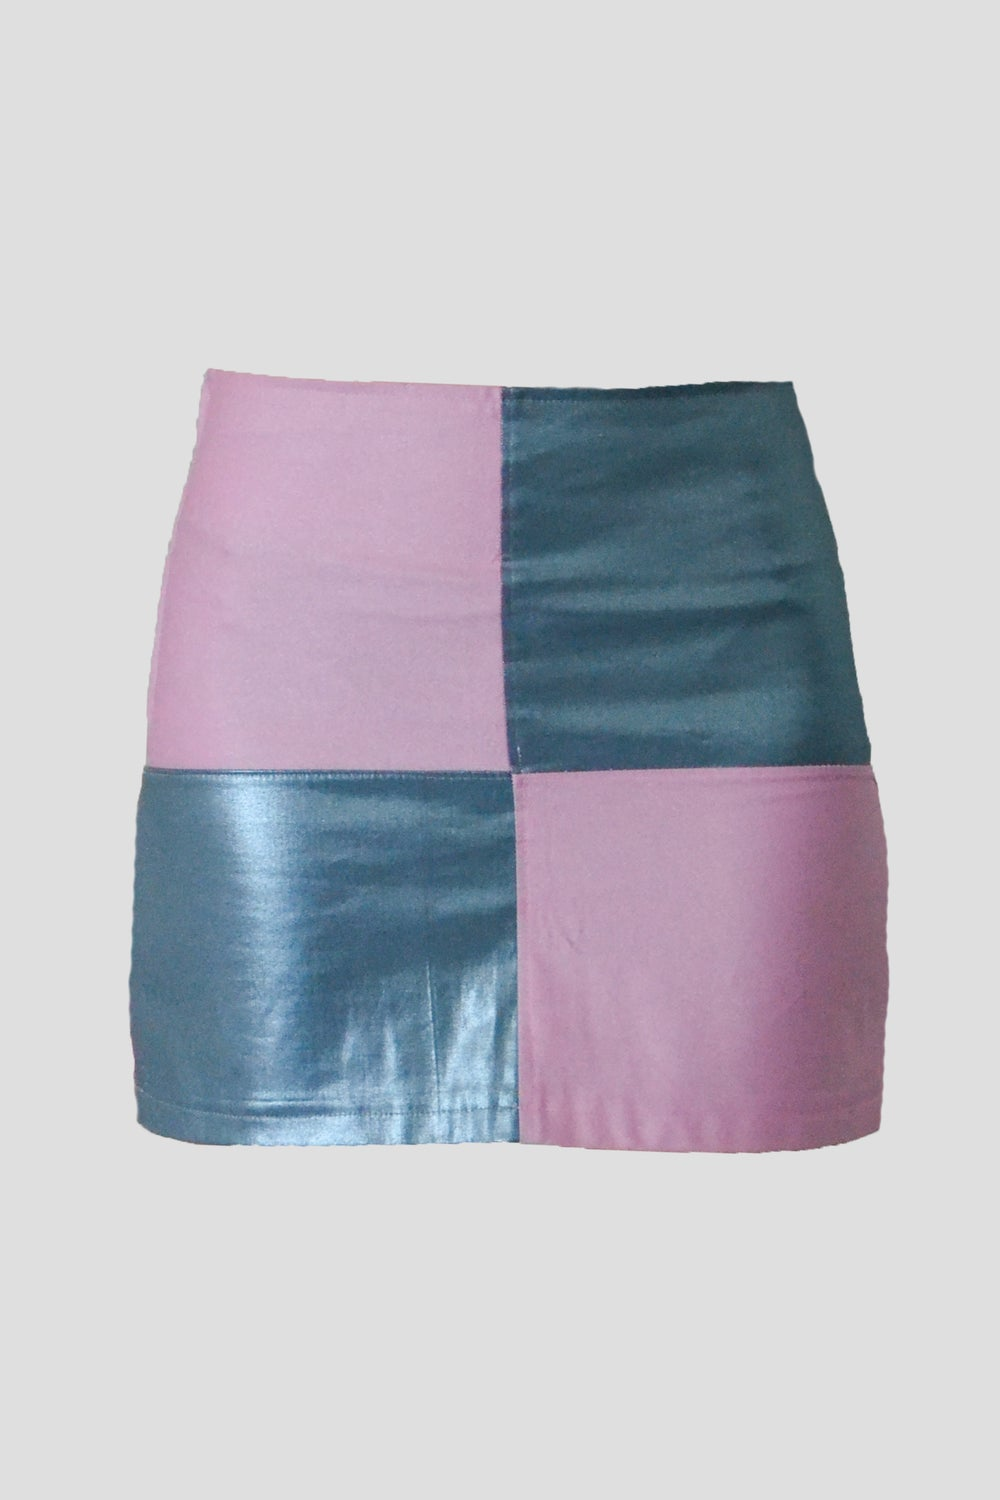 Image of 2 toned skirt